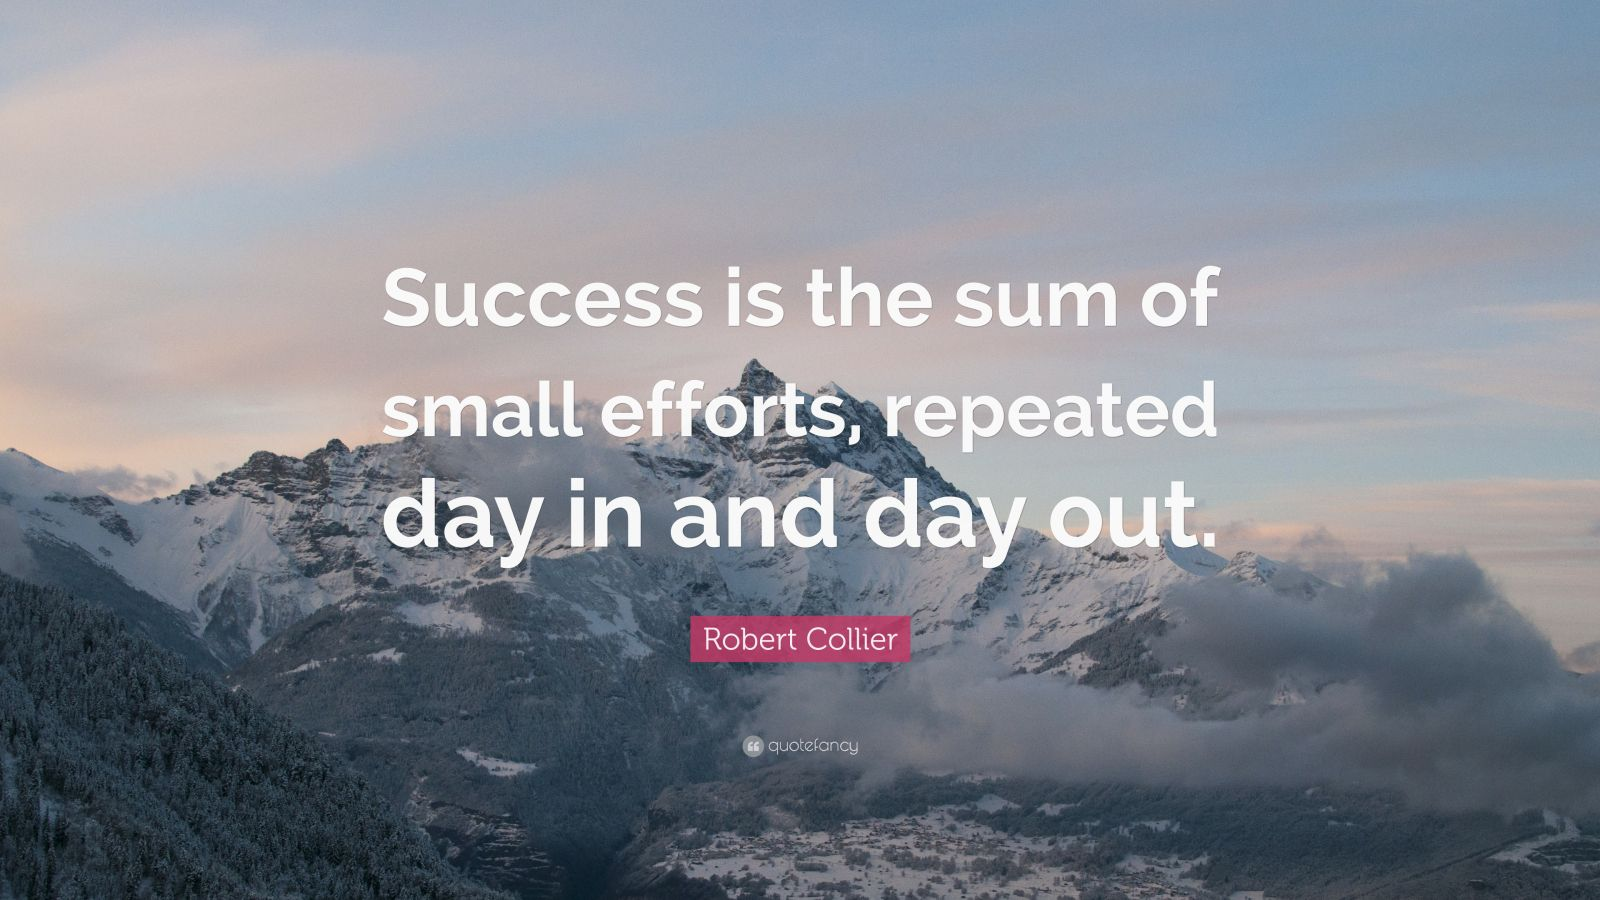 Steve Jobs Motivational Quotes Wallpaper Robert Collier Quote Success Is The Sum Of Small Efforts